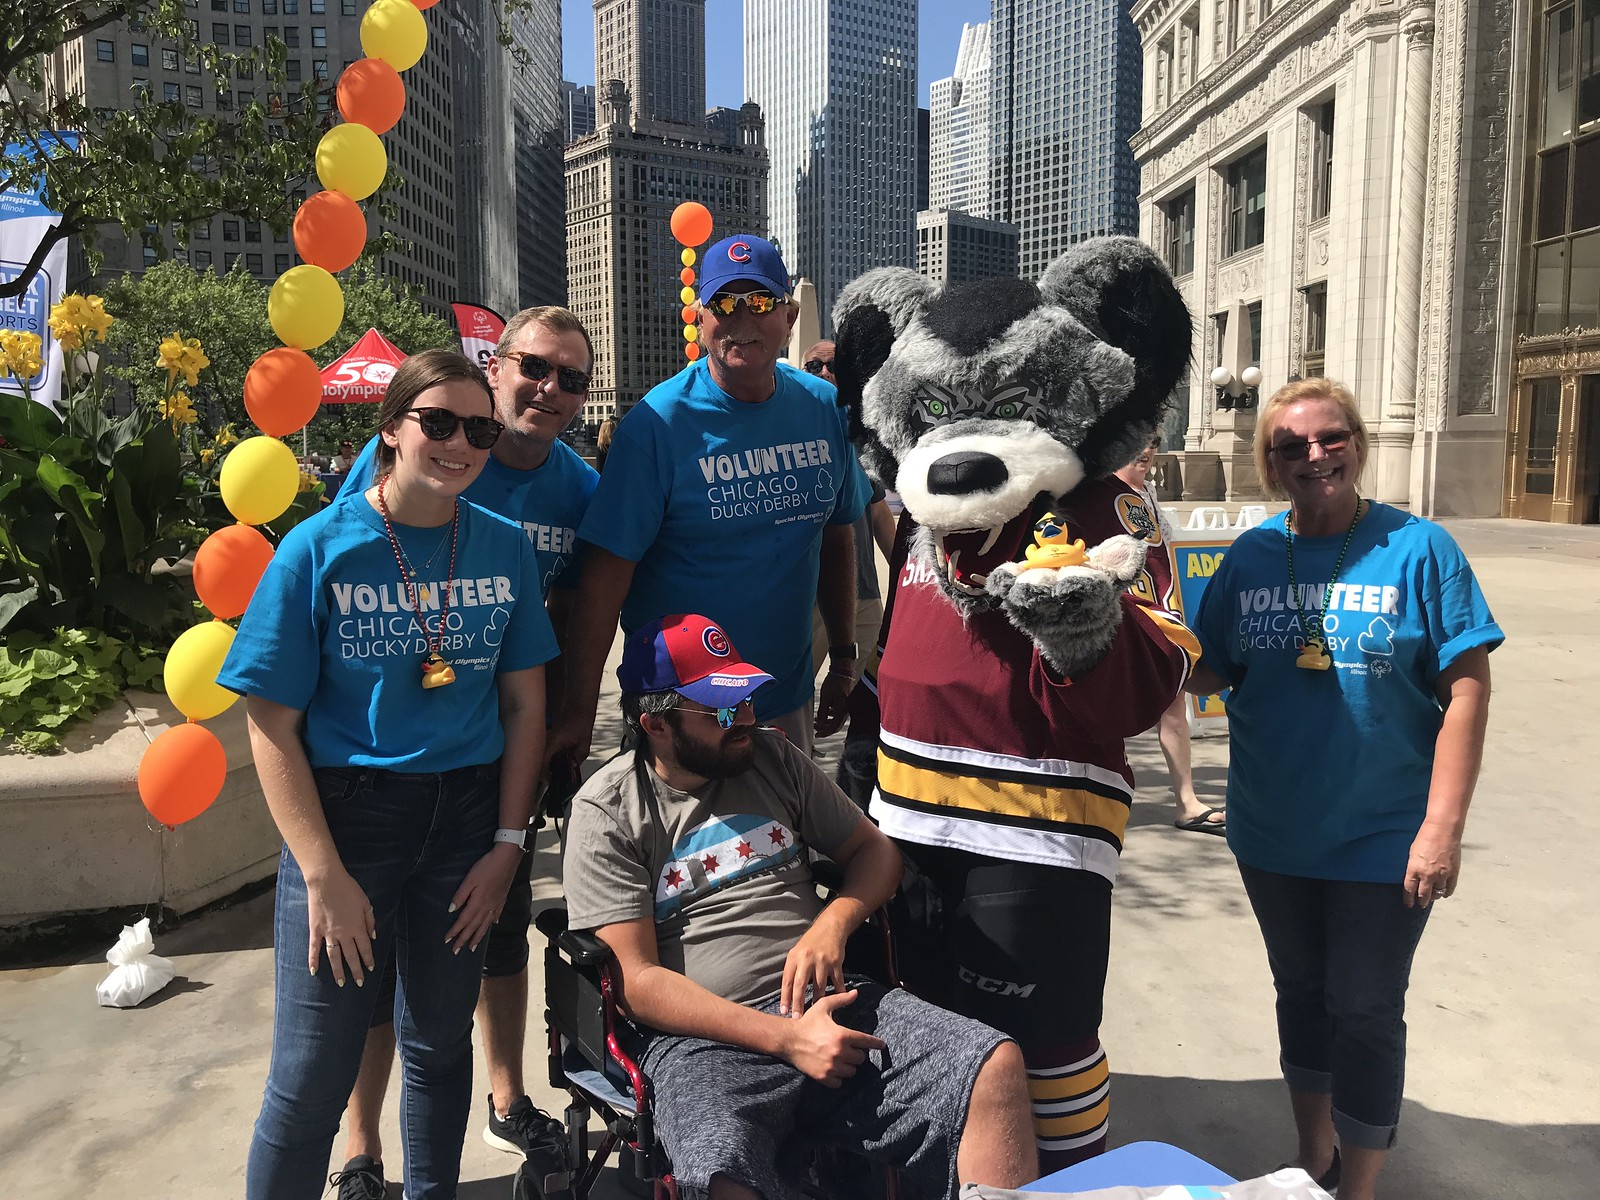 Skates at Chicago Ducky Derby 2019